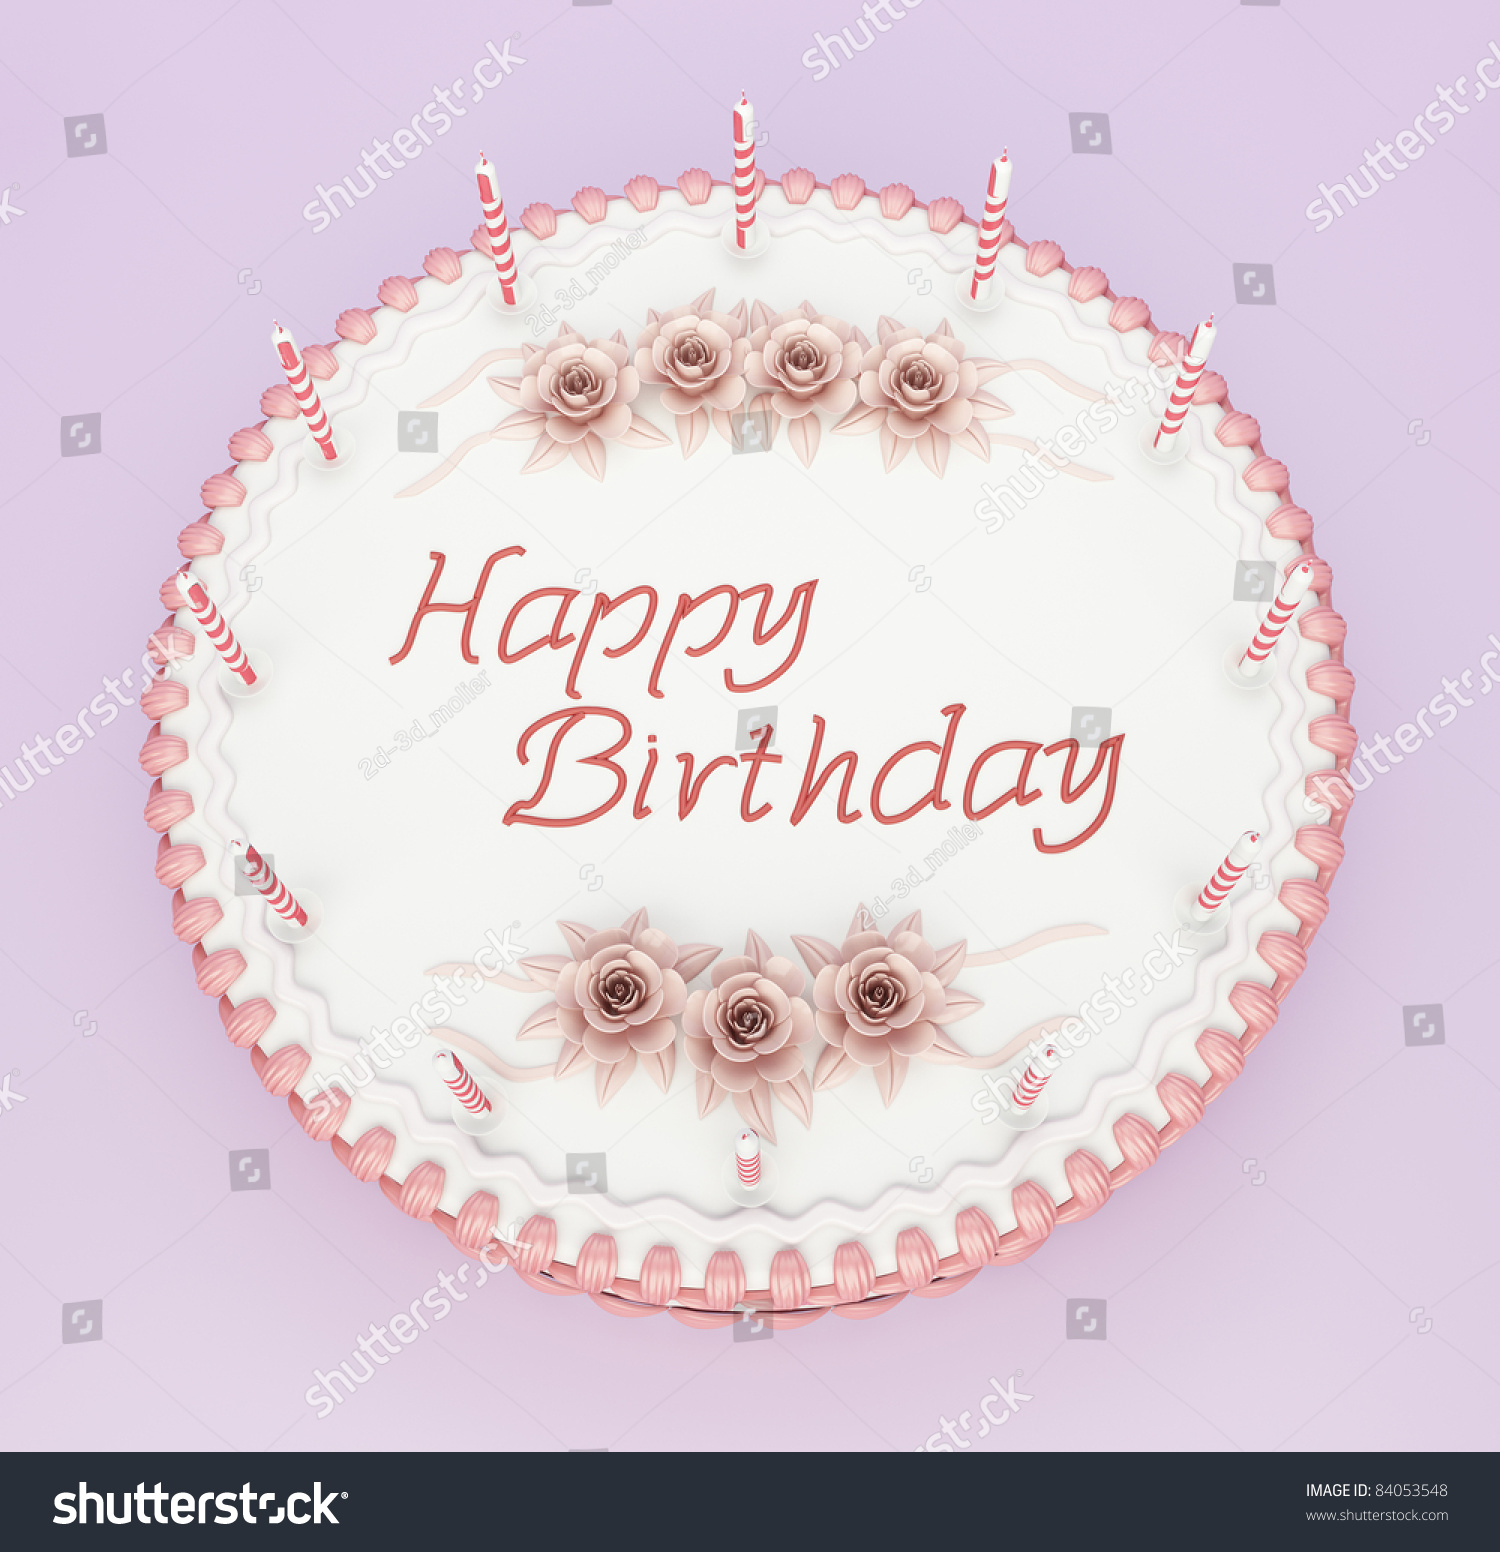 Top View Birthday Cake Candles Roses Stock Illustration 84053548